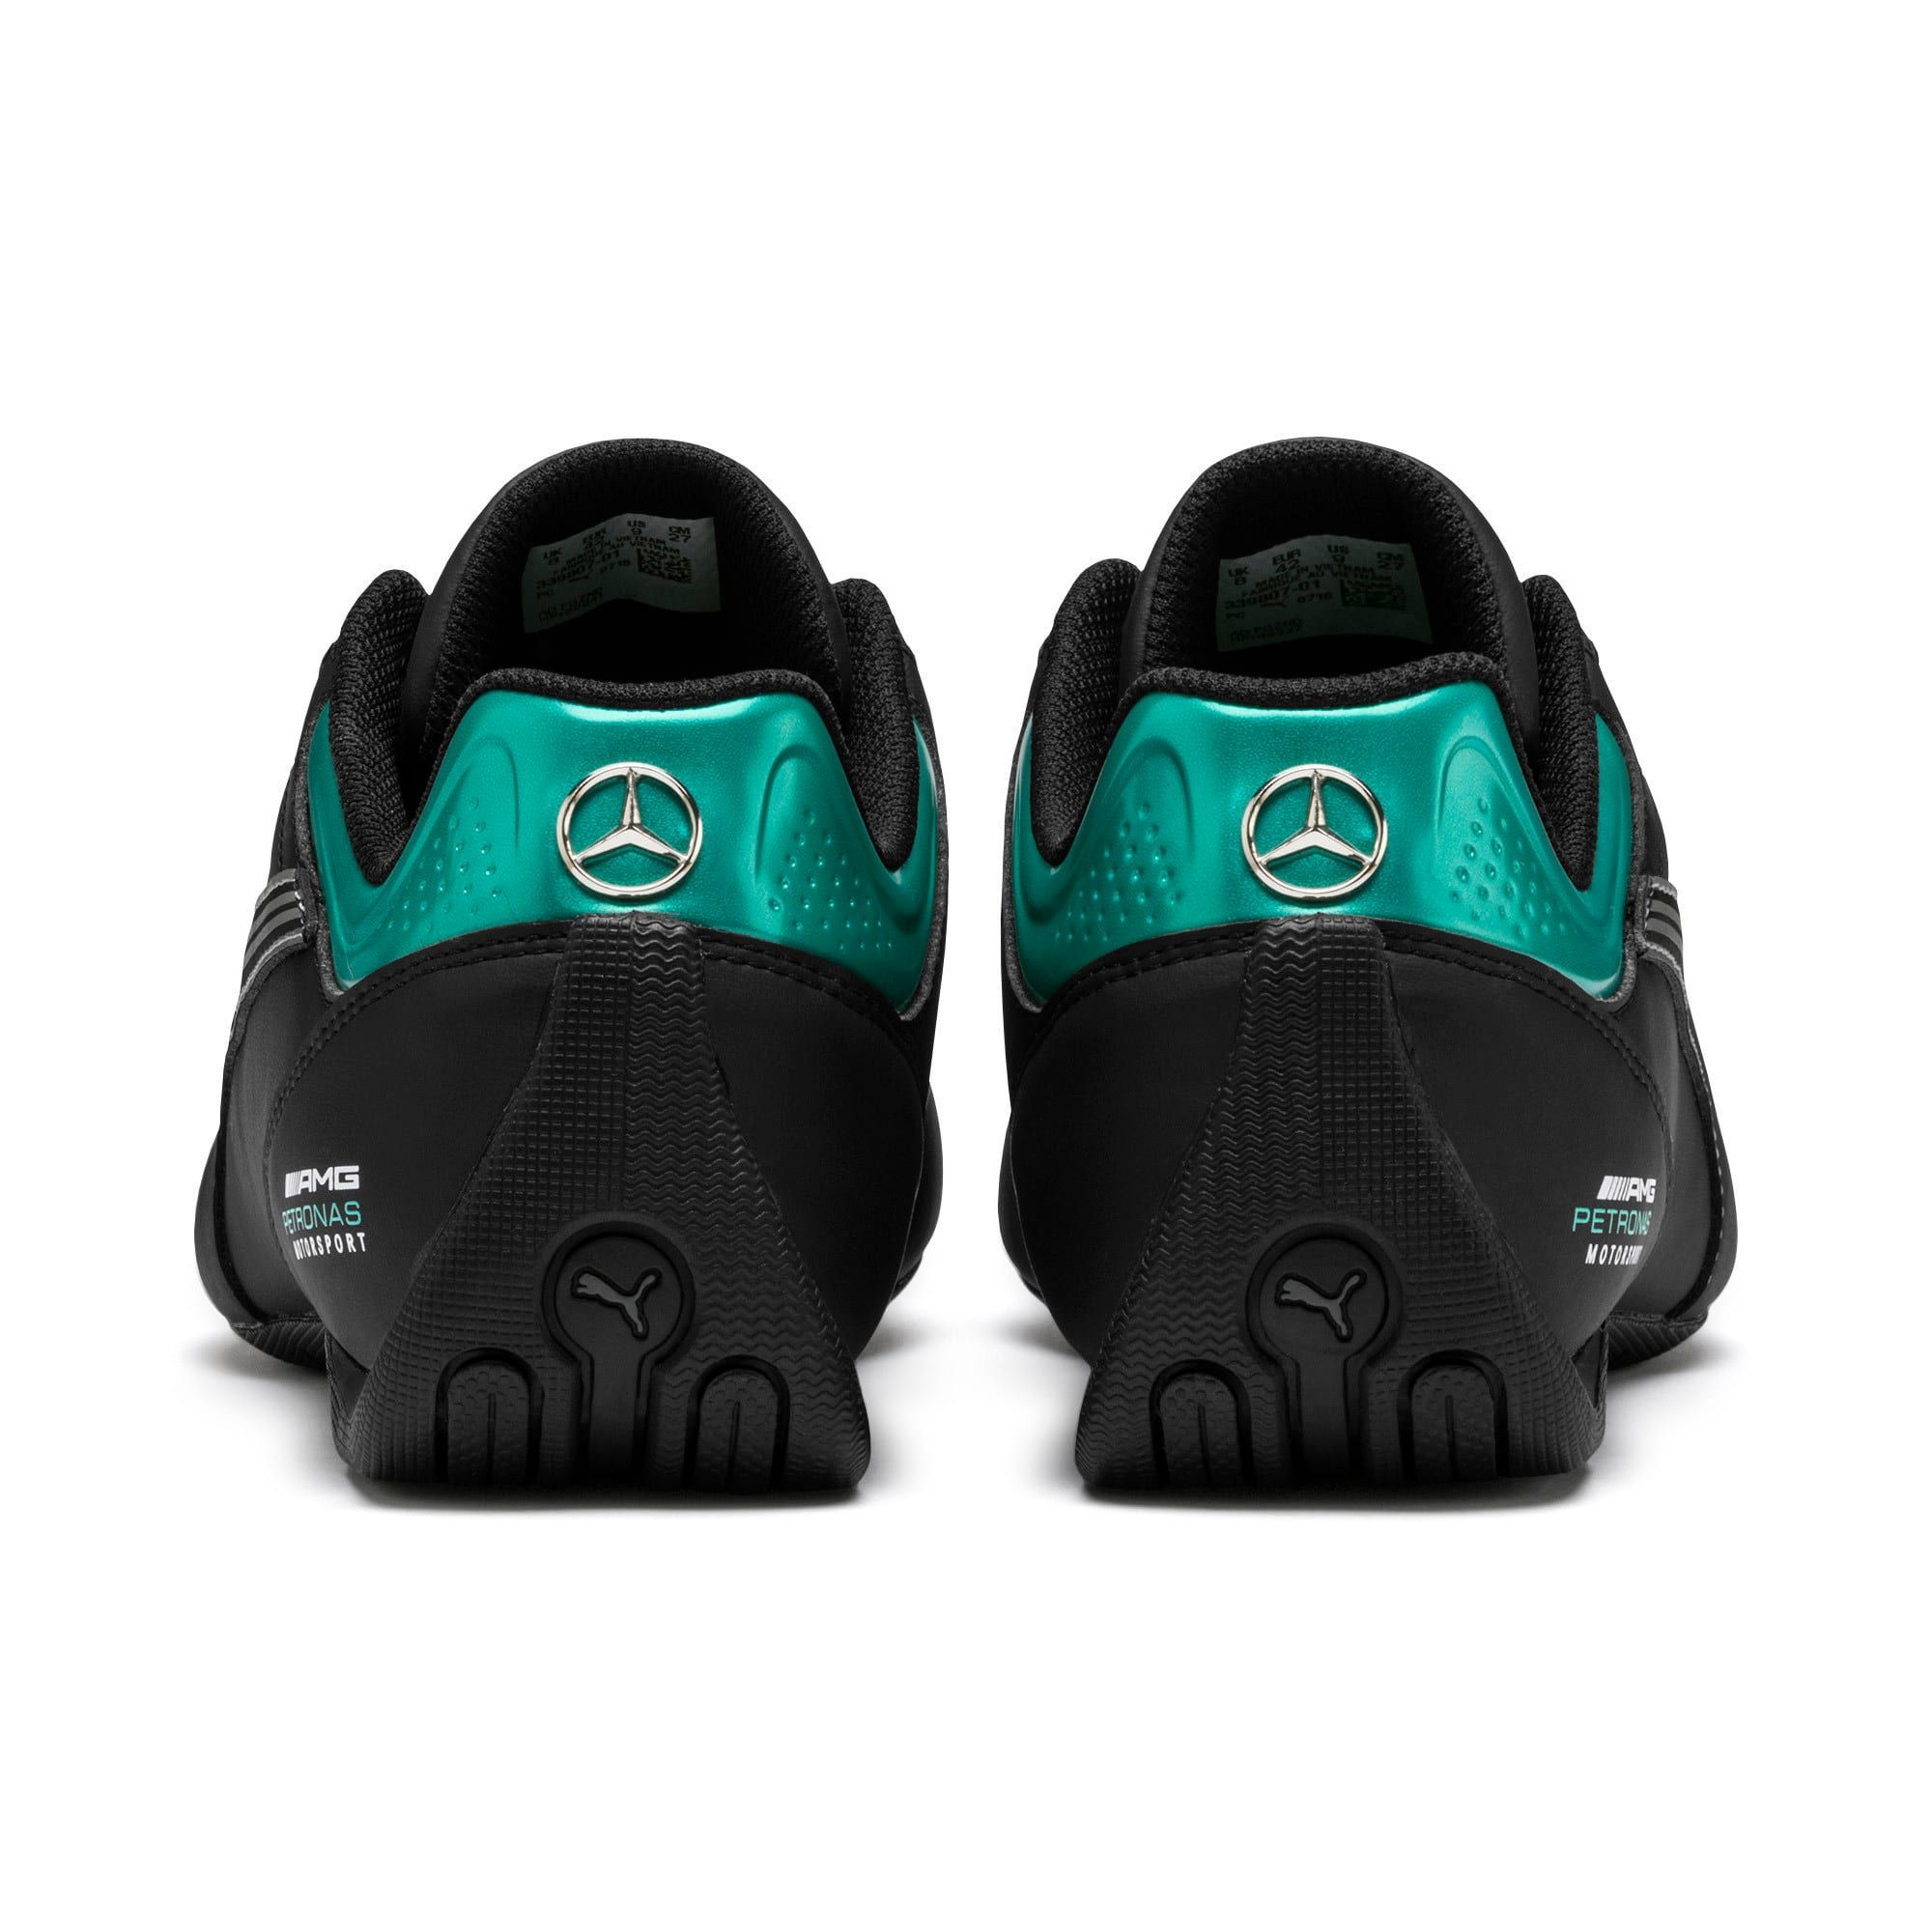 Mercedes AMG Petronas Motorsport Future Kart Cat Trainers